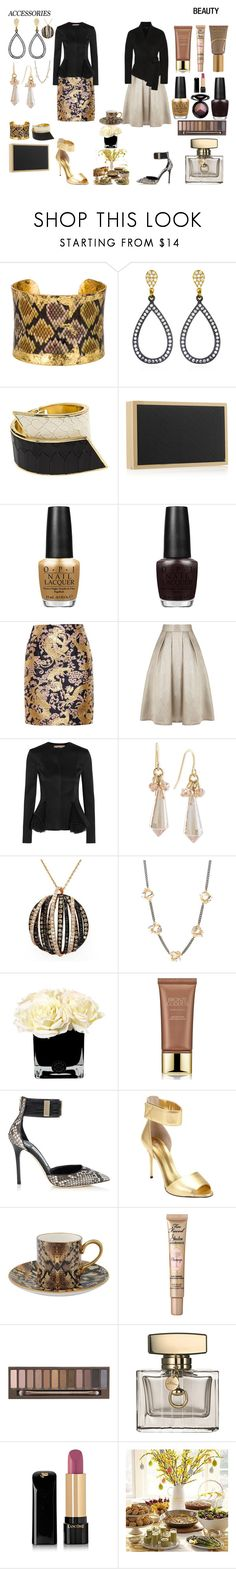 """""""Brunch"""" by colesumler ❤ liked on Polyvore featuring Évocateur, CC SKYE, Victoria Beckham, OPI, Lanvin, Coast, Christopher Kane, Ultimate, Carolee and Effy Jewelry"""